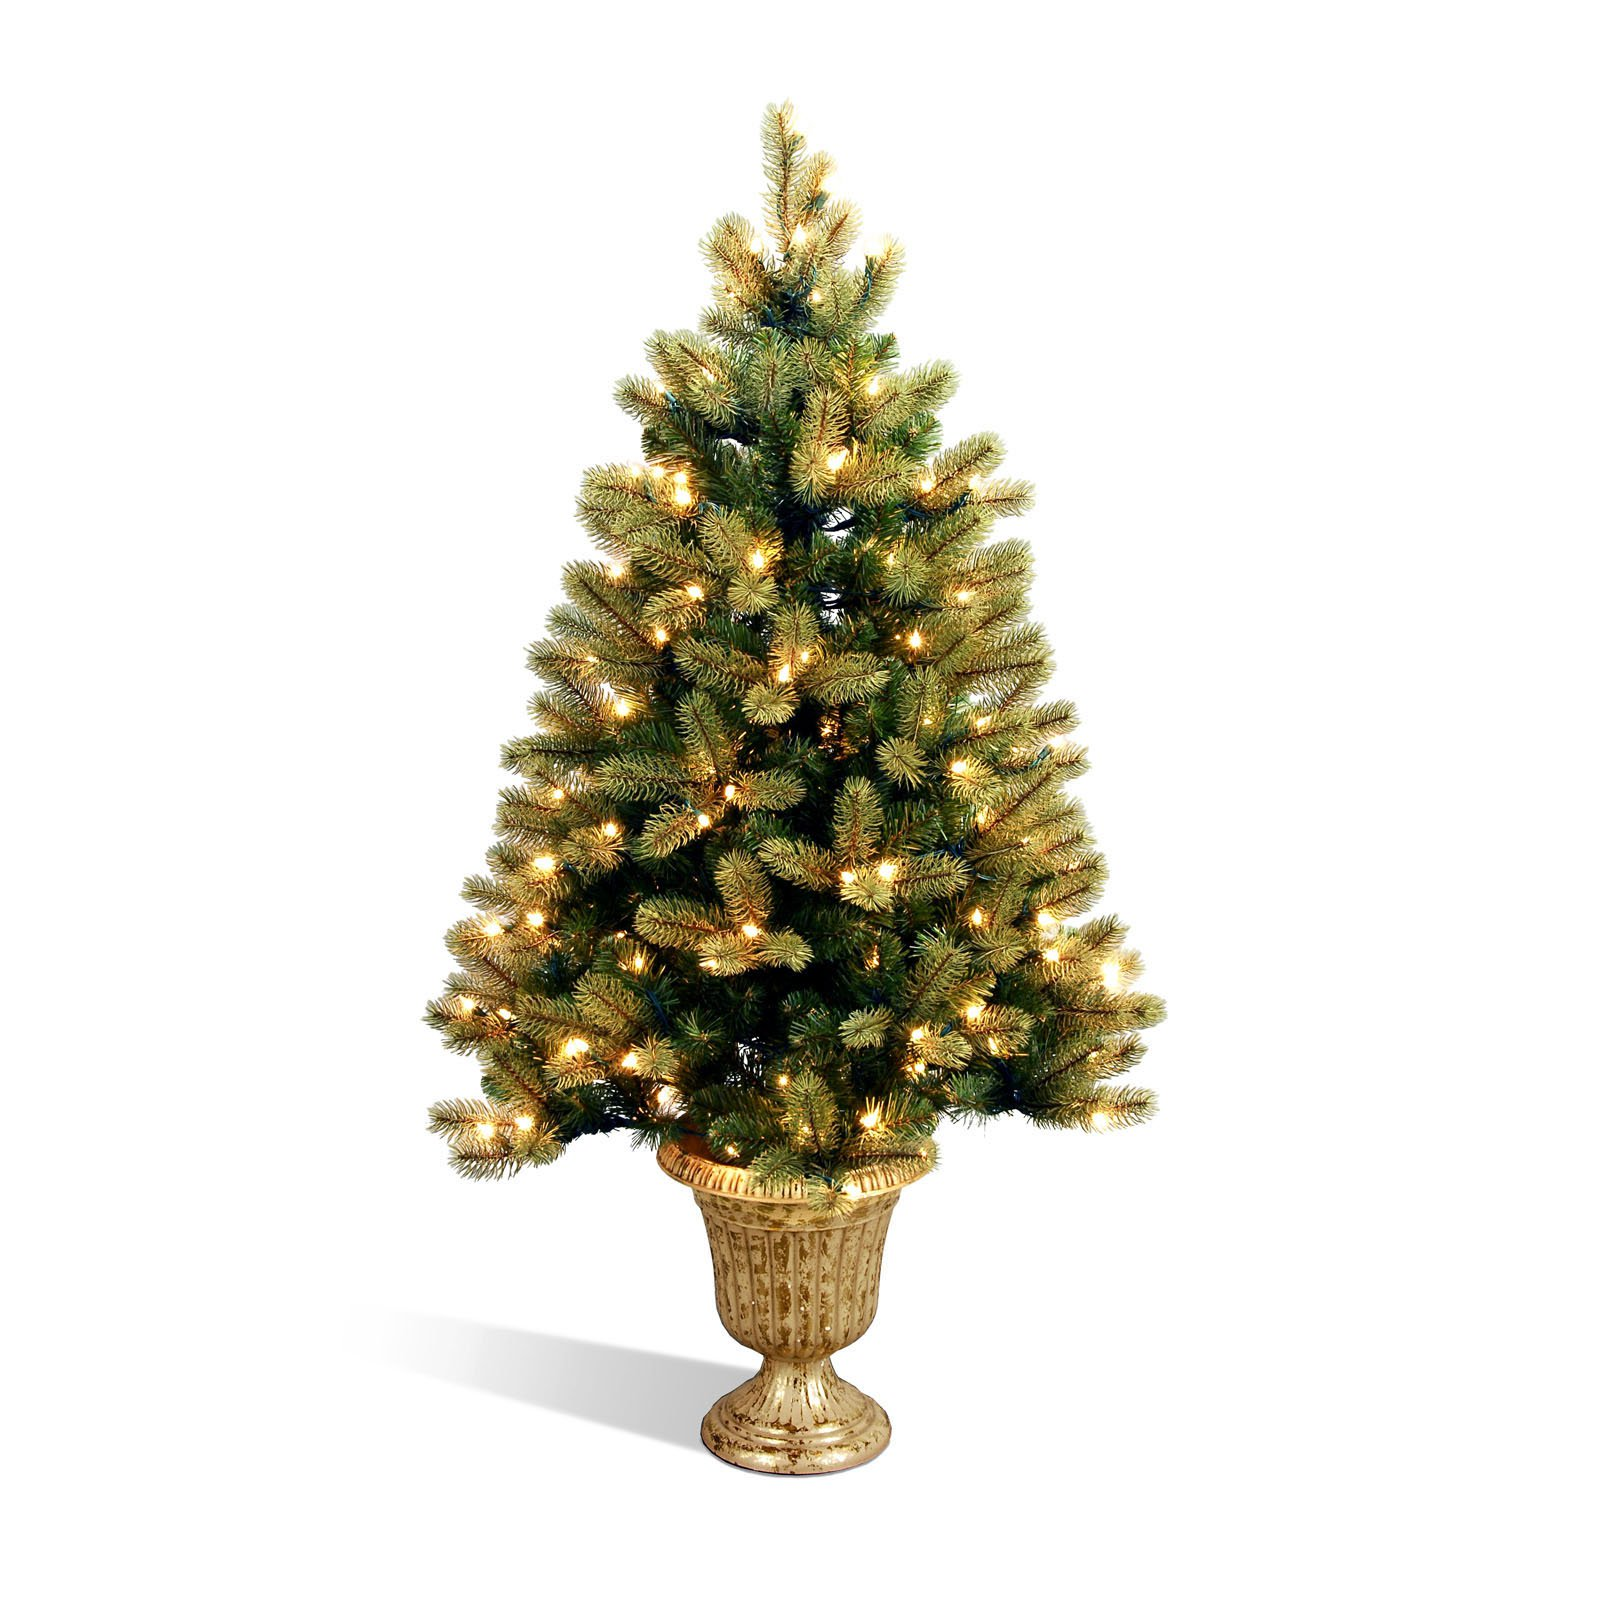 PEJF1-327-40 National Tree 4 Foot Poly Jersey Fraser Fir Entrance Tree with 100 Clear Lights in Decorative Urn